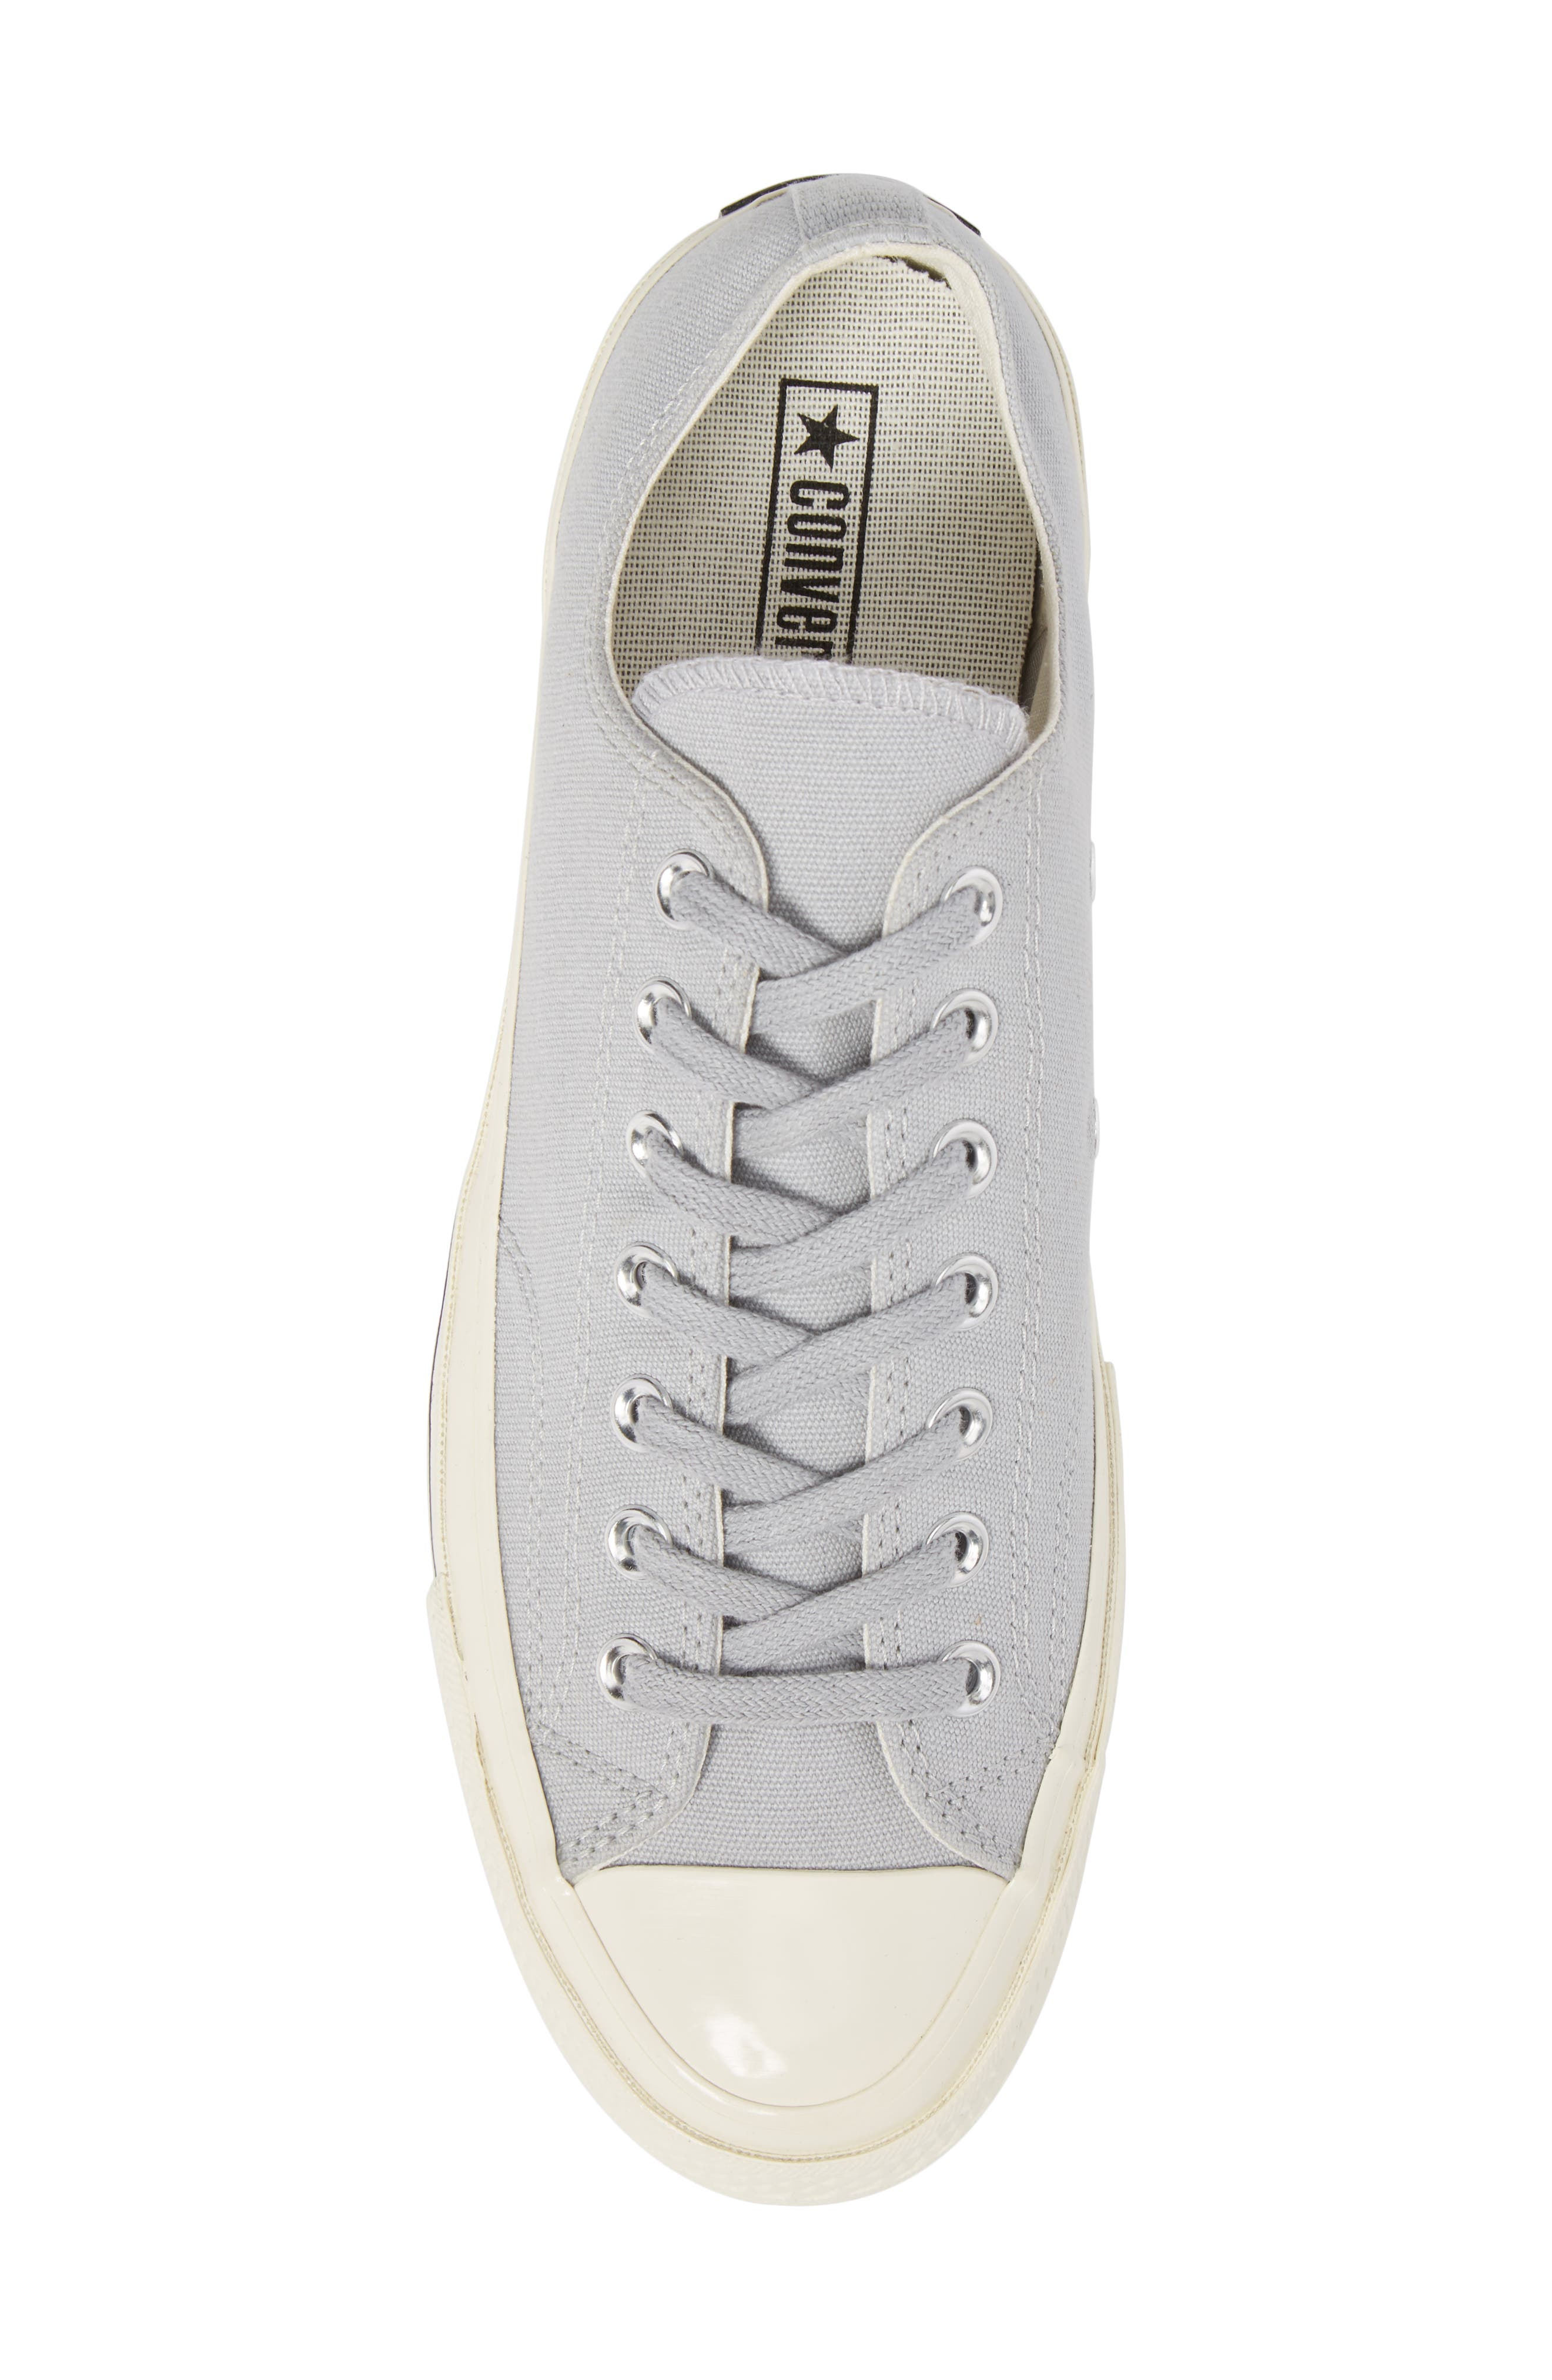 CONVERSE,                             Chuck Taylor<sup>®</sup> All Star<sup>®</sup> 70 Heritage Low Top Sneaker,                             Alternate thumbnail 5, color,                             097